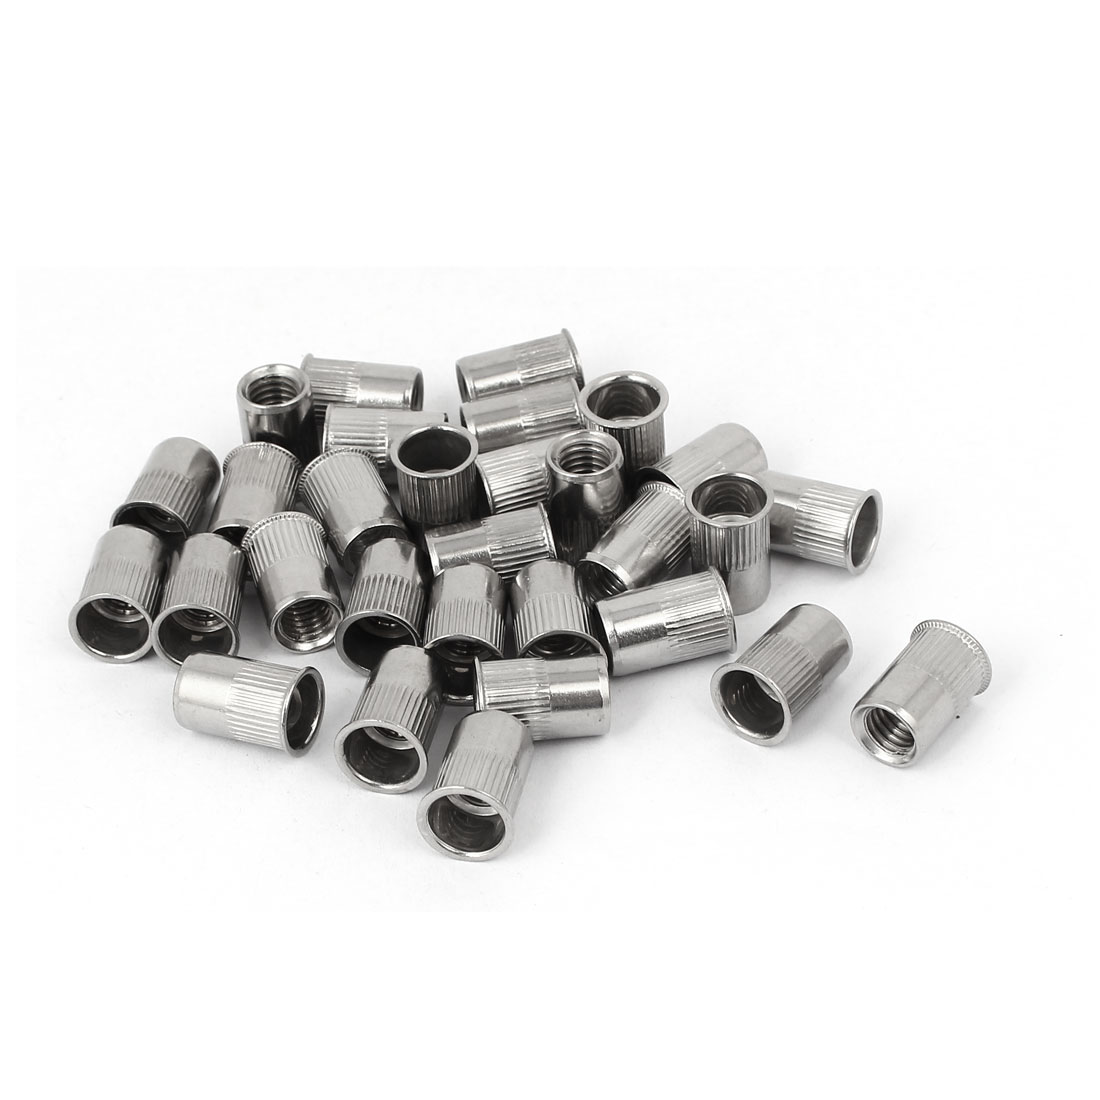 M8 x 17mm Knurled Stripe Countersunk Head Rivet Nut Insert Nutsert 50PCS